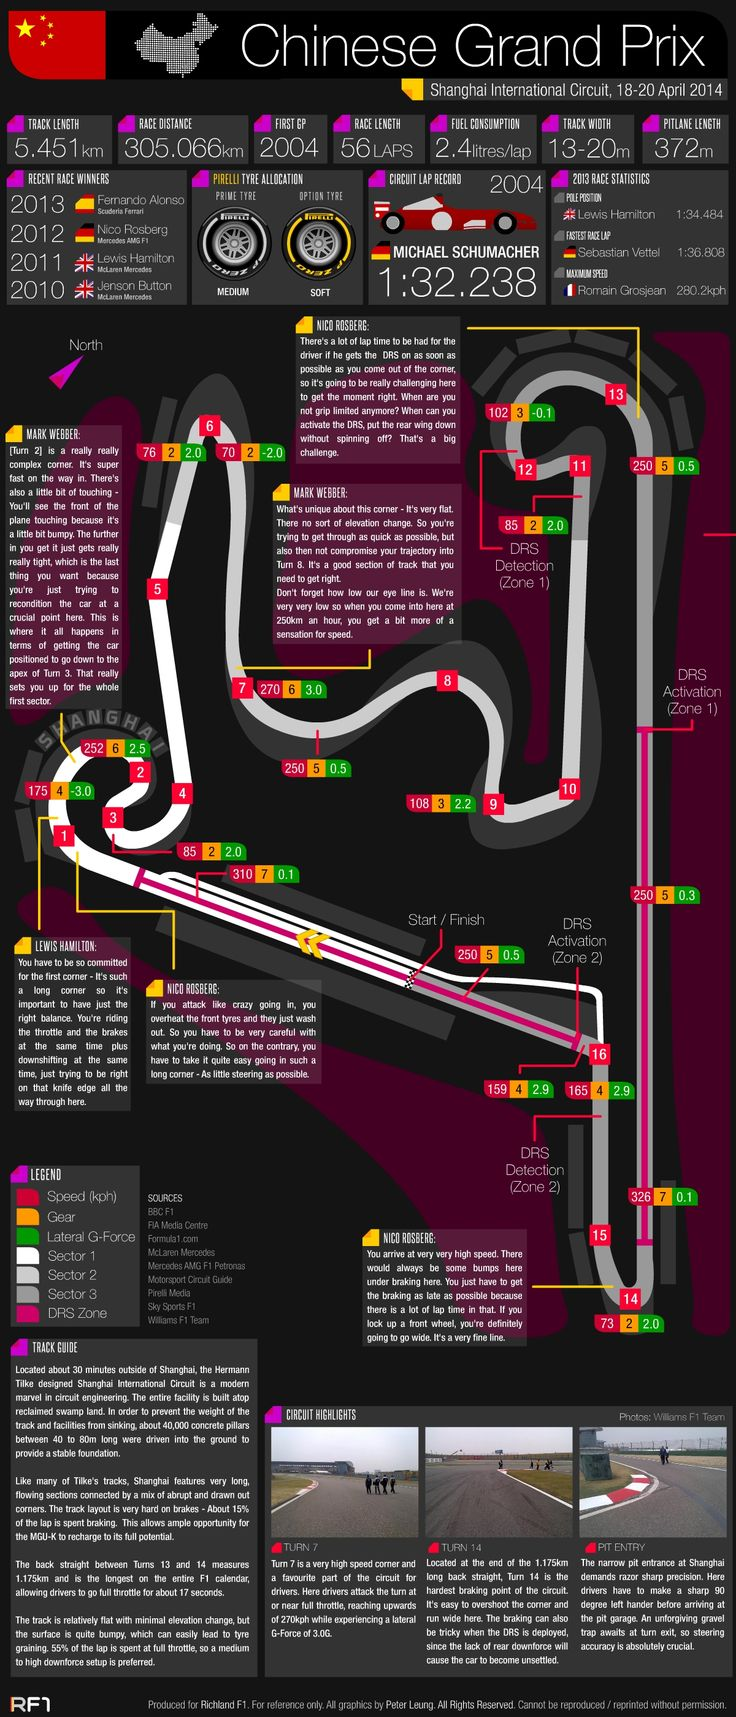 Grand Prix Guide - 2014 Chinese Grand Prix #F1